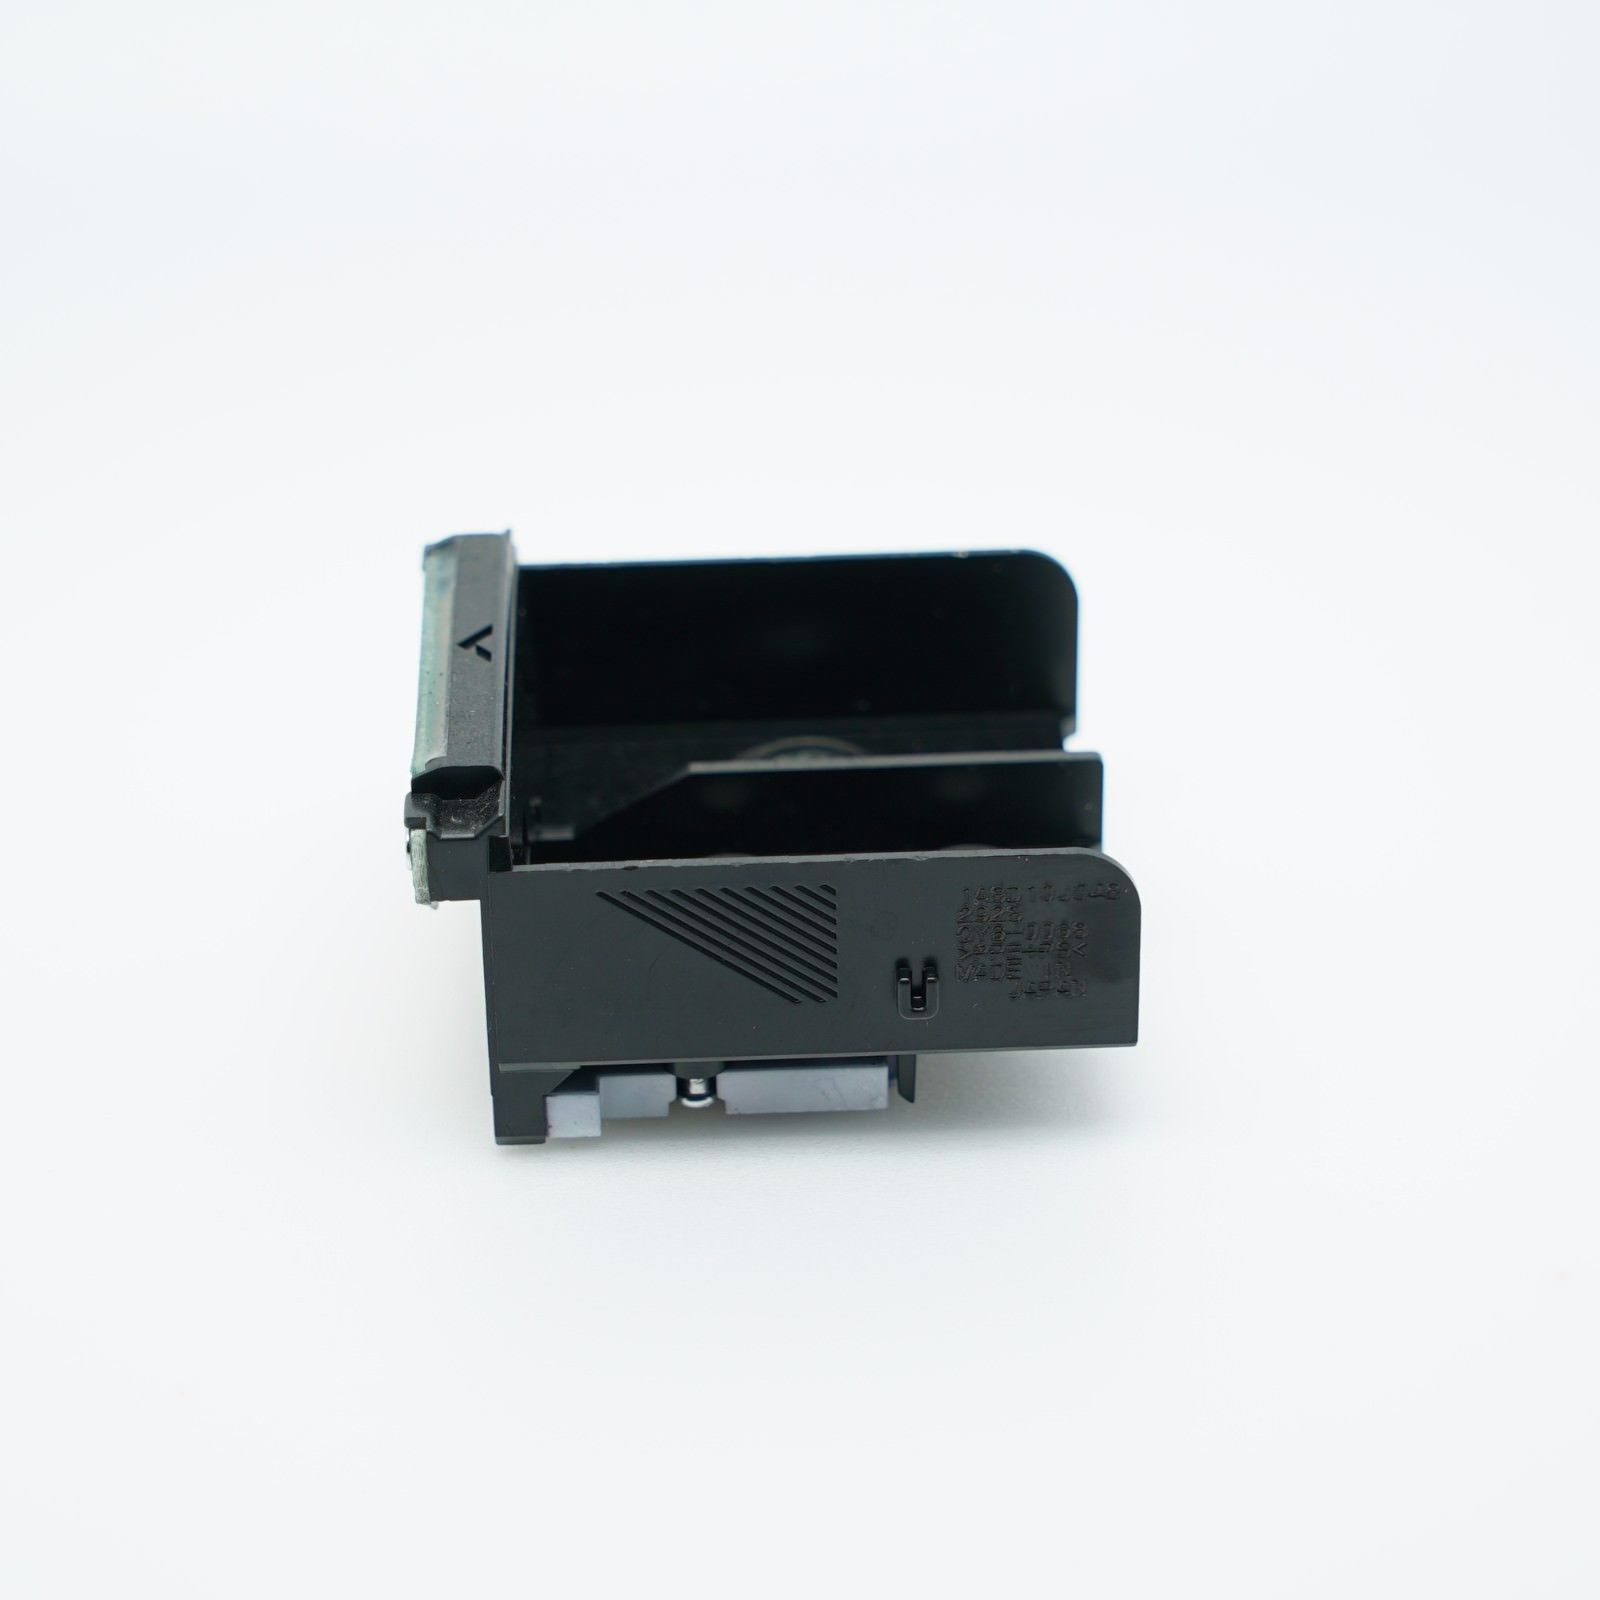 Startling Prinad Print Head Canon Pixma Ip Printer Parts From Computer Office On Alibabagroup Prinad Print Head Canon Pixma Ip Canon Pixma Ip100 Bluetooth Adapter Canon Pixma Ip100 Flashing Orange Lig dpreview Canon Pixma Ip100